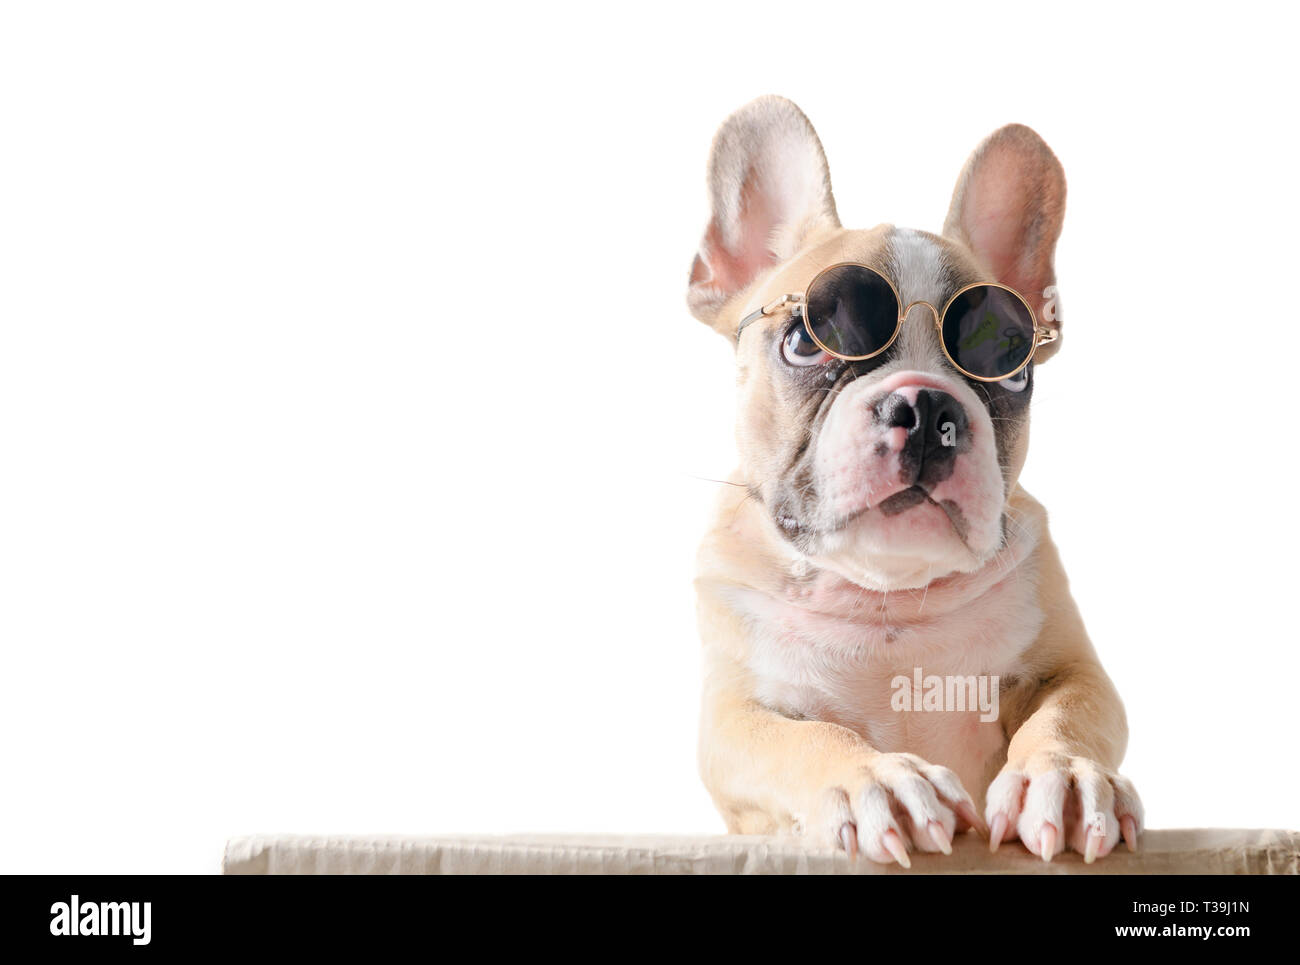 7bd93a30 Cute french bulldog wear sunglass stand on box isolated on white background,  pet in summer